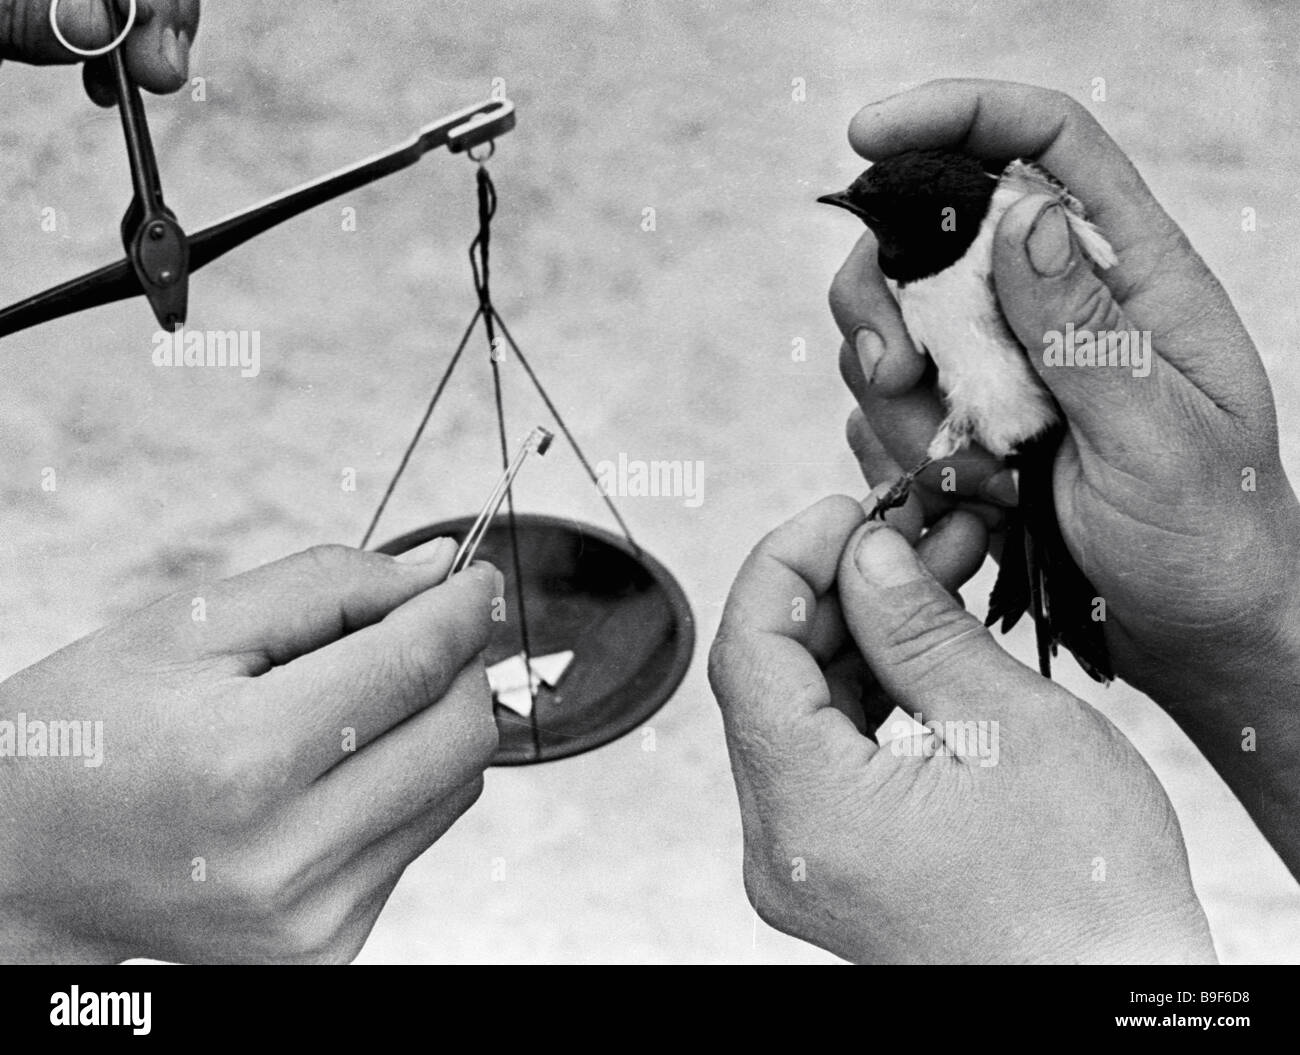 Ringing a migrating swallow Institute of Zoology and Parasitology - Stock Image